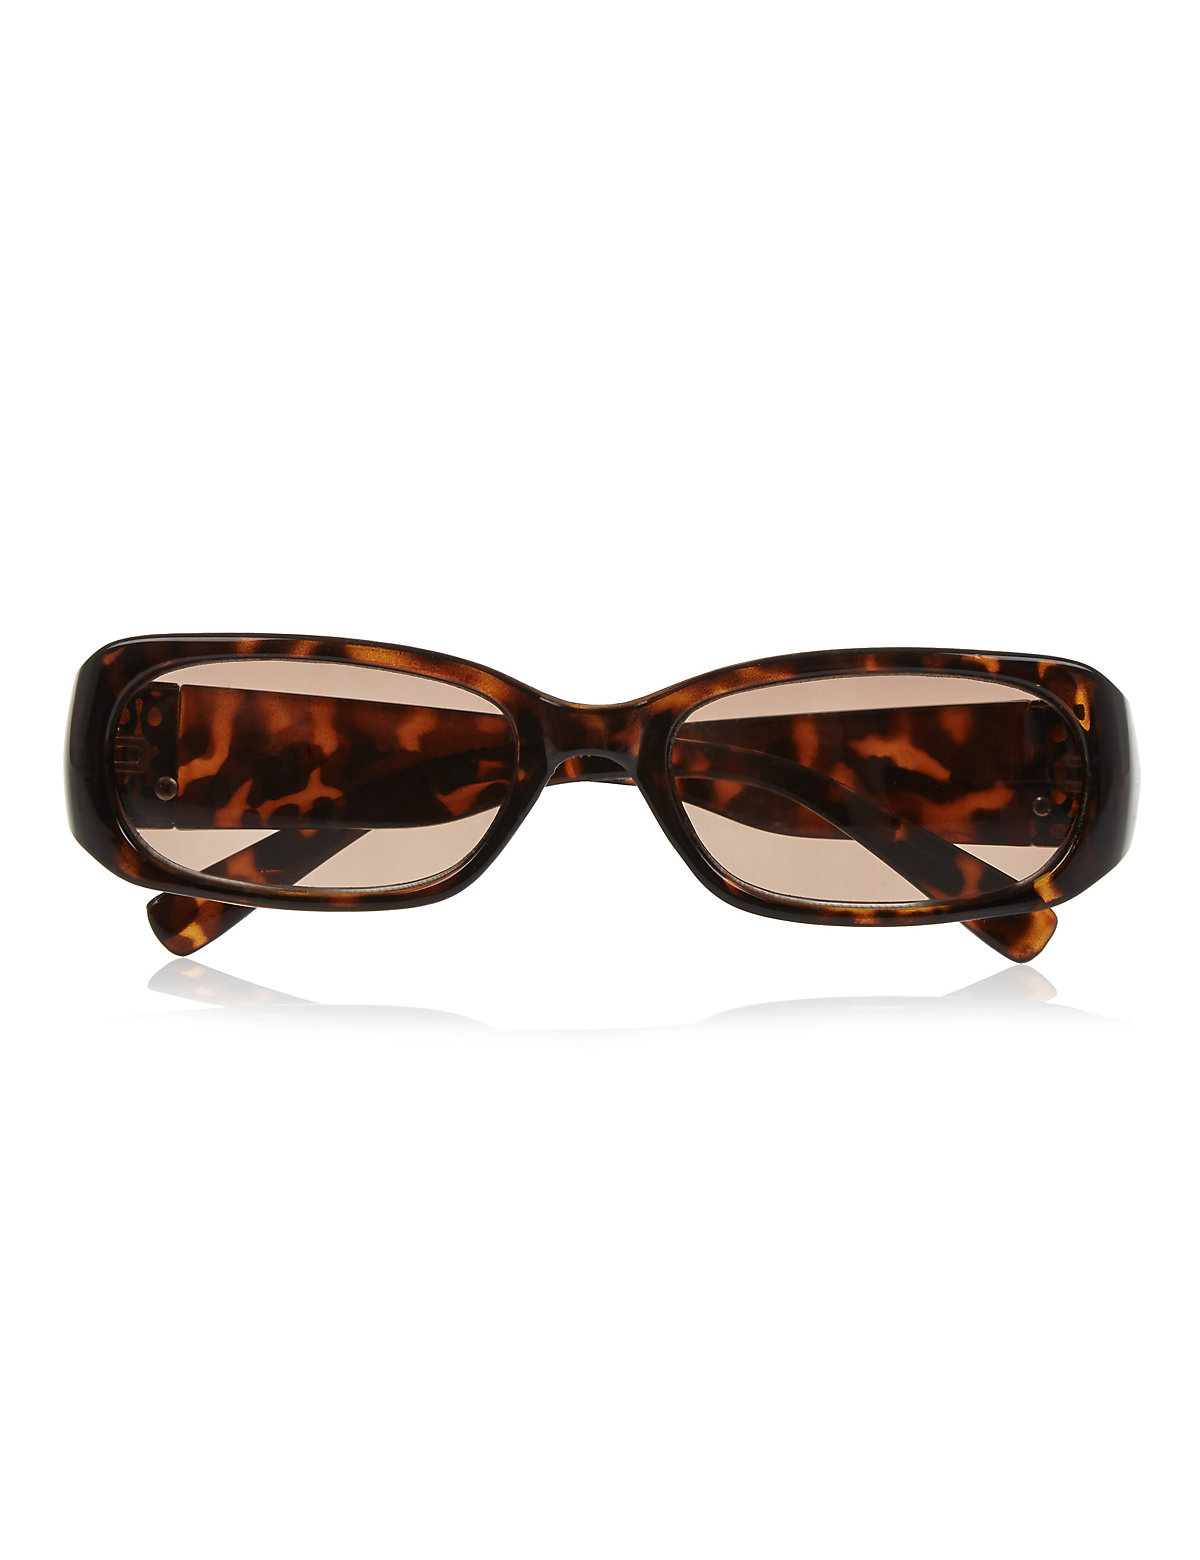 Large Mock Tortoiseshell Reading Sunglasses Brown 25